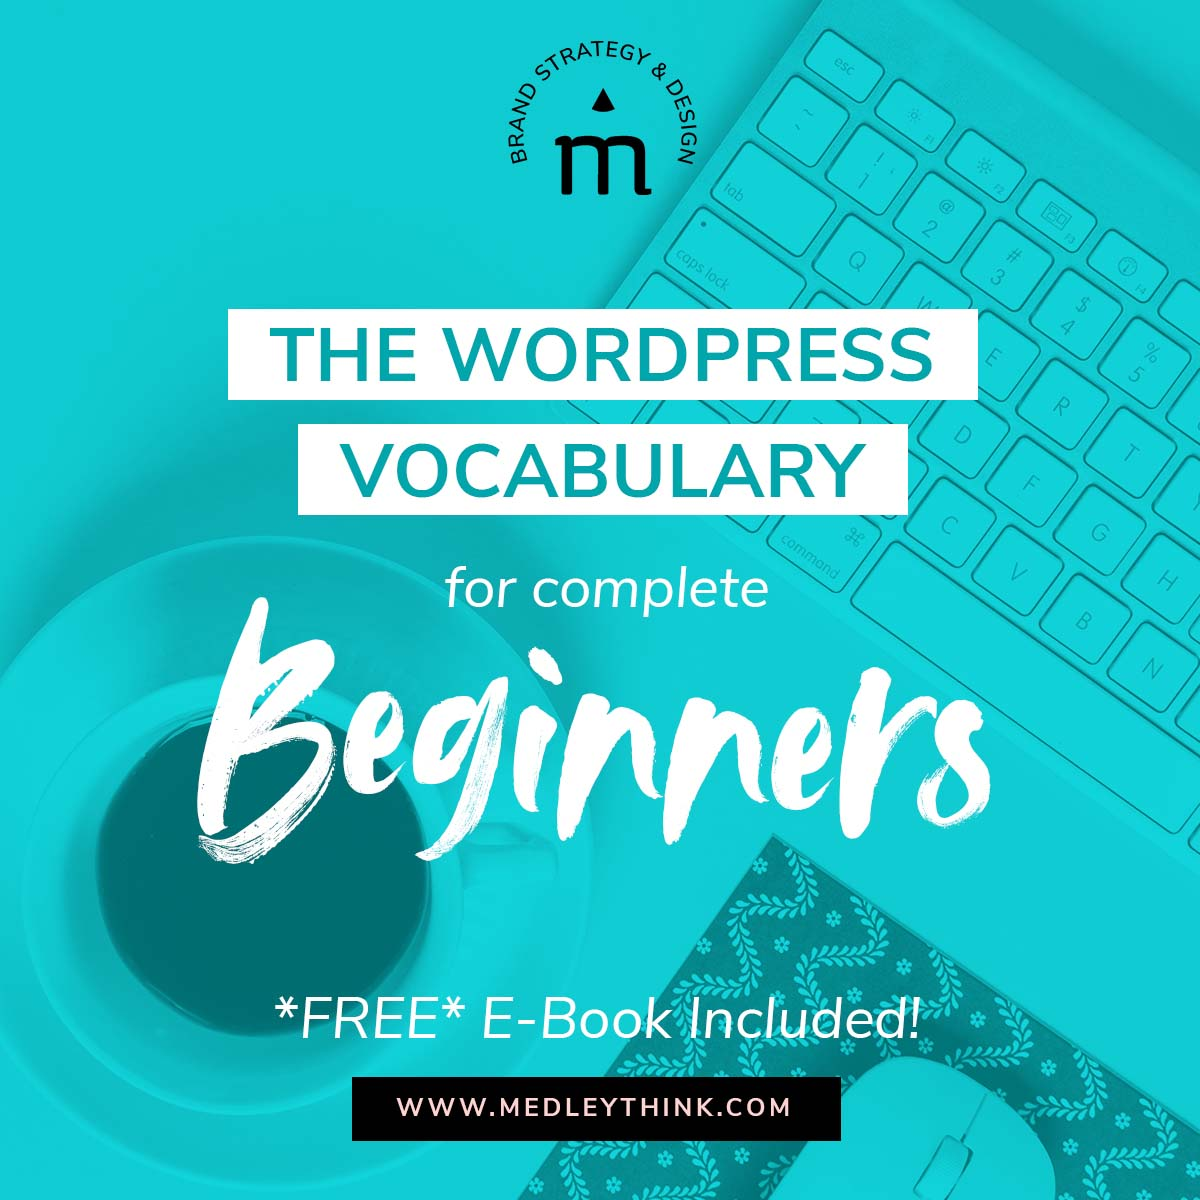 Are you DIYing your website? Are you working with Wordpress and not sure where to start? Take a look at our Wordpress vocabulary for beginners! #diywebsite #wordpress #websitedesign